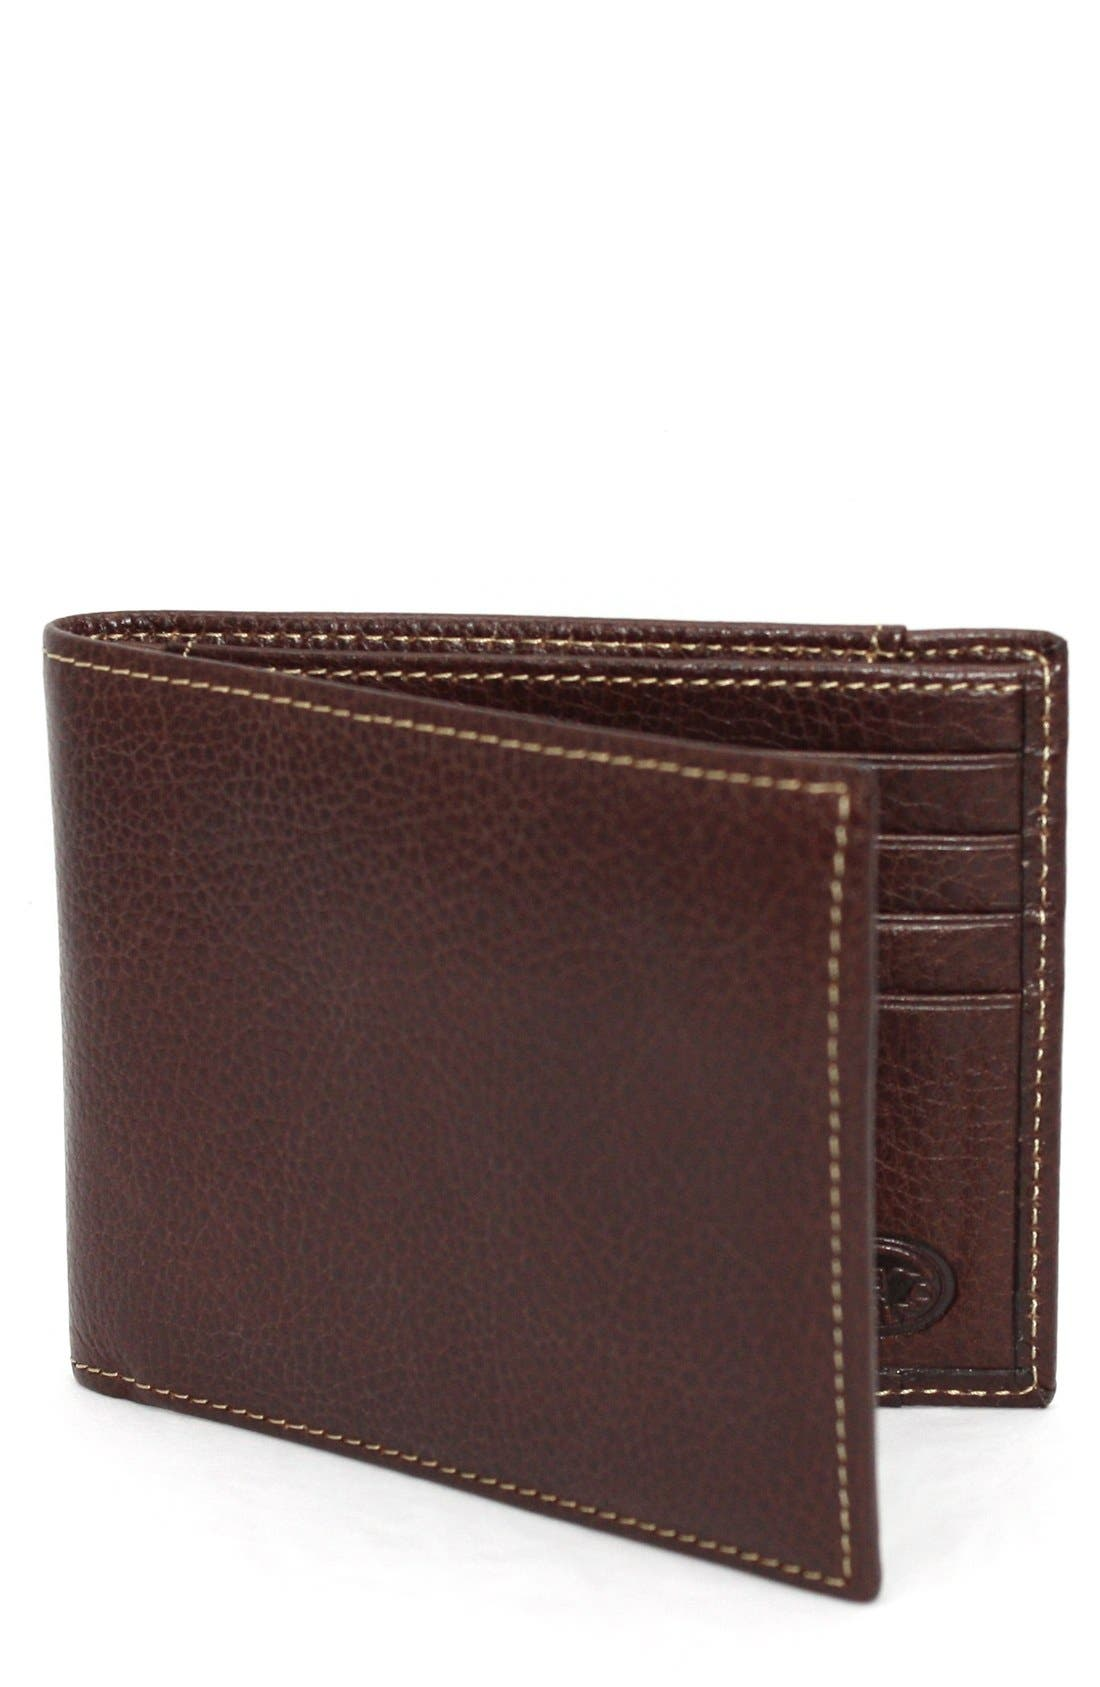 Soft, tumbled leather is shaped into a handsome billfold designed with enough pockets and slots for your cash, plastic and other essentials. Style Name: Torino Leather Billfold Wallet. Style Number: 5080219. Available in stores.